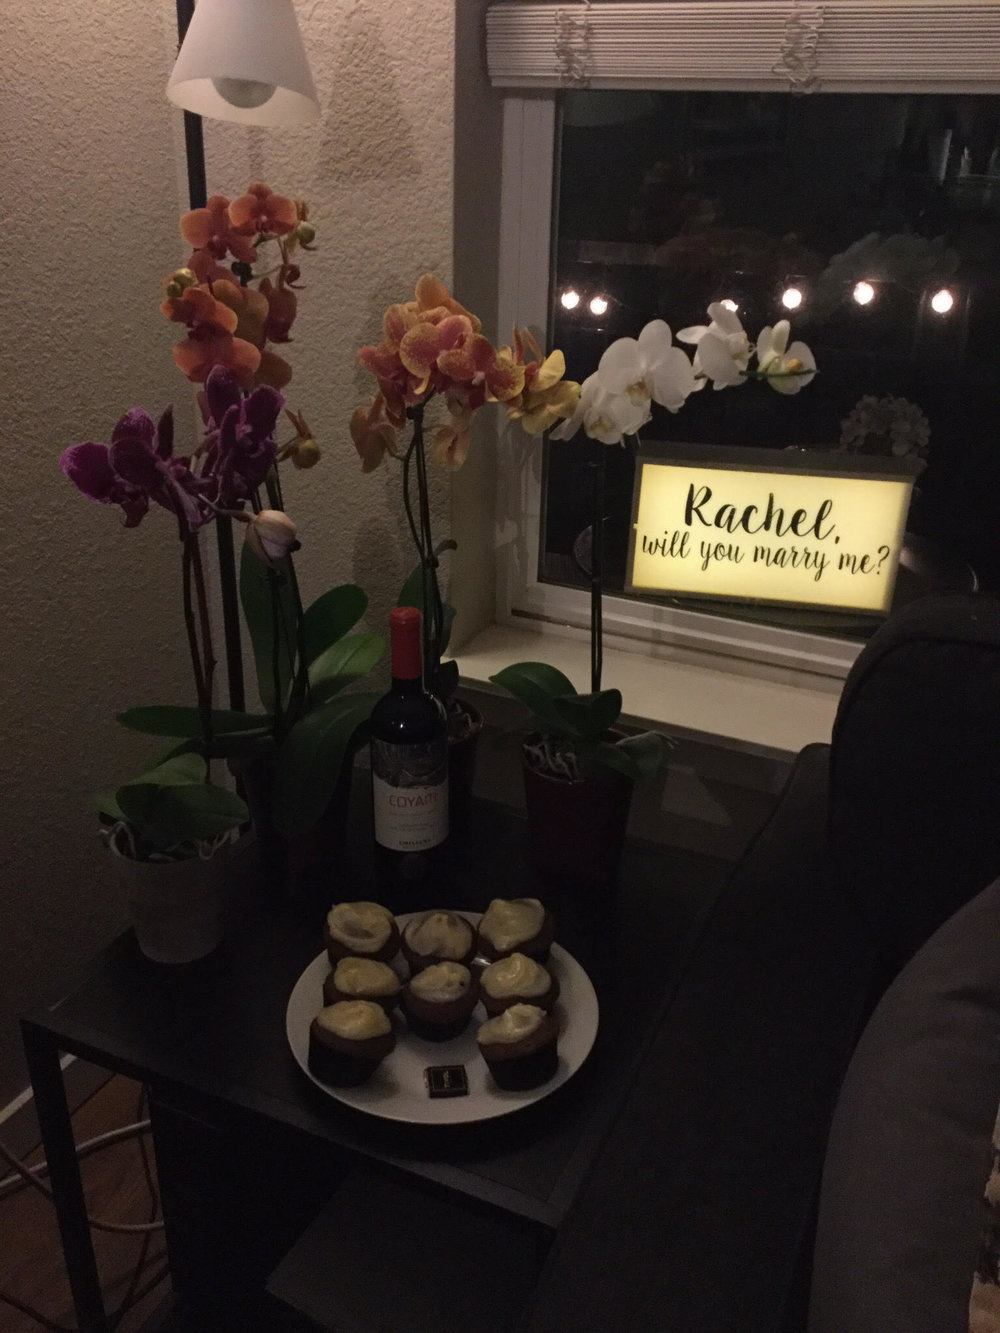 Not only had Jonas ran home to decorate, but he also whipped up homemade red velvet cupcakes while I was at the nail salon and salt caves. He kept his work clothes and badge on because he knows I am crazy attentive to details and would have noticed. He's too good.